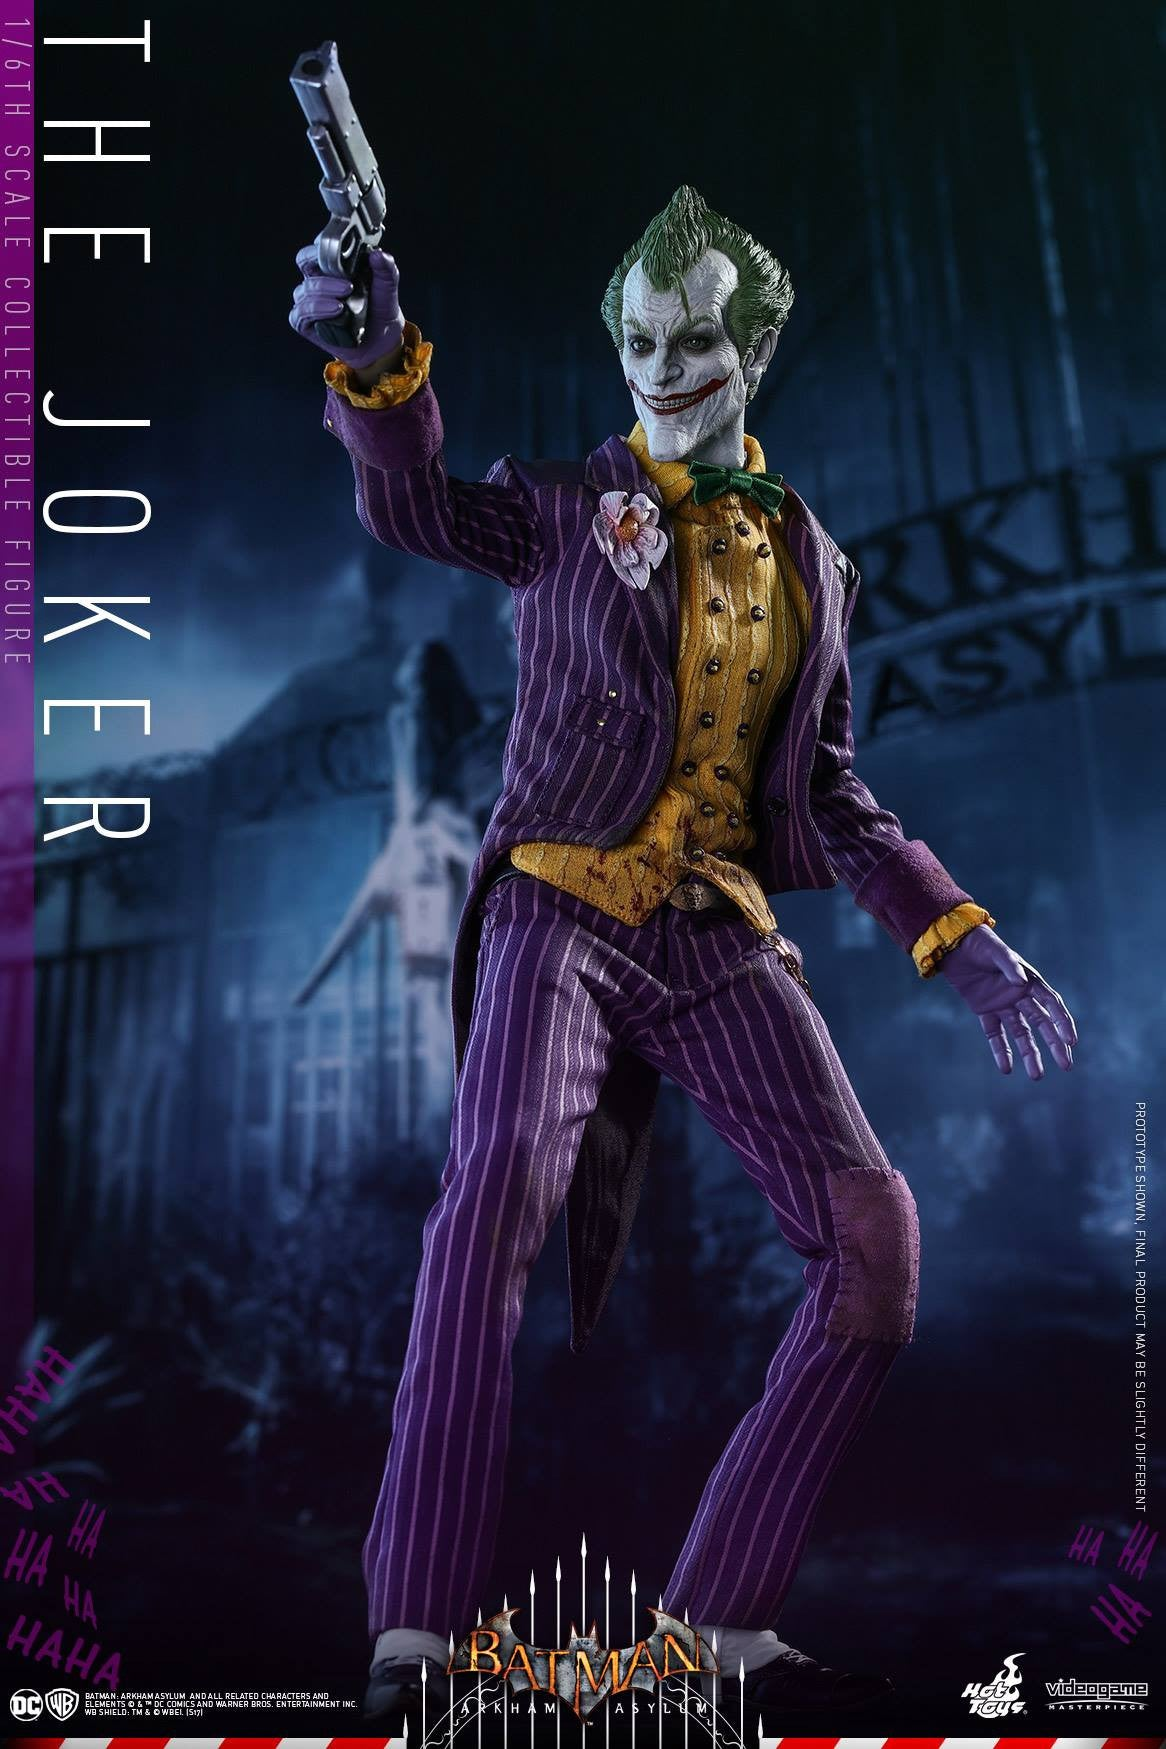 Hot Toys - VGM27 - Batman: Arkham Asylum - The Joker - Marvelous Toys - 6